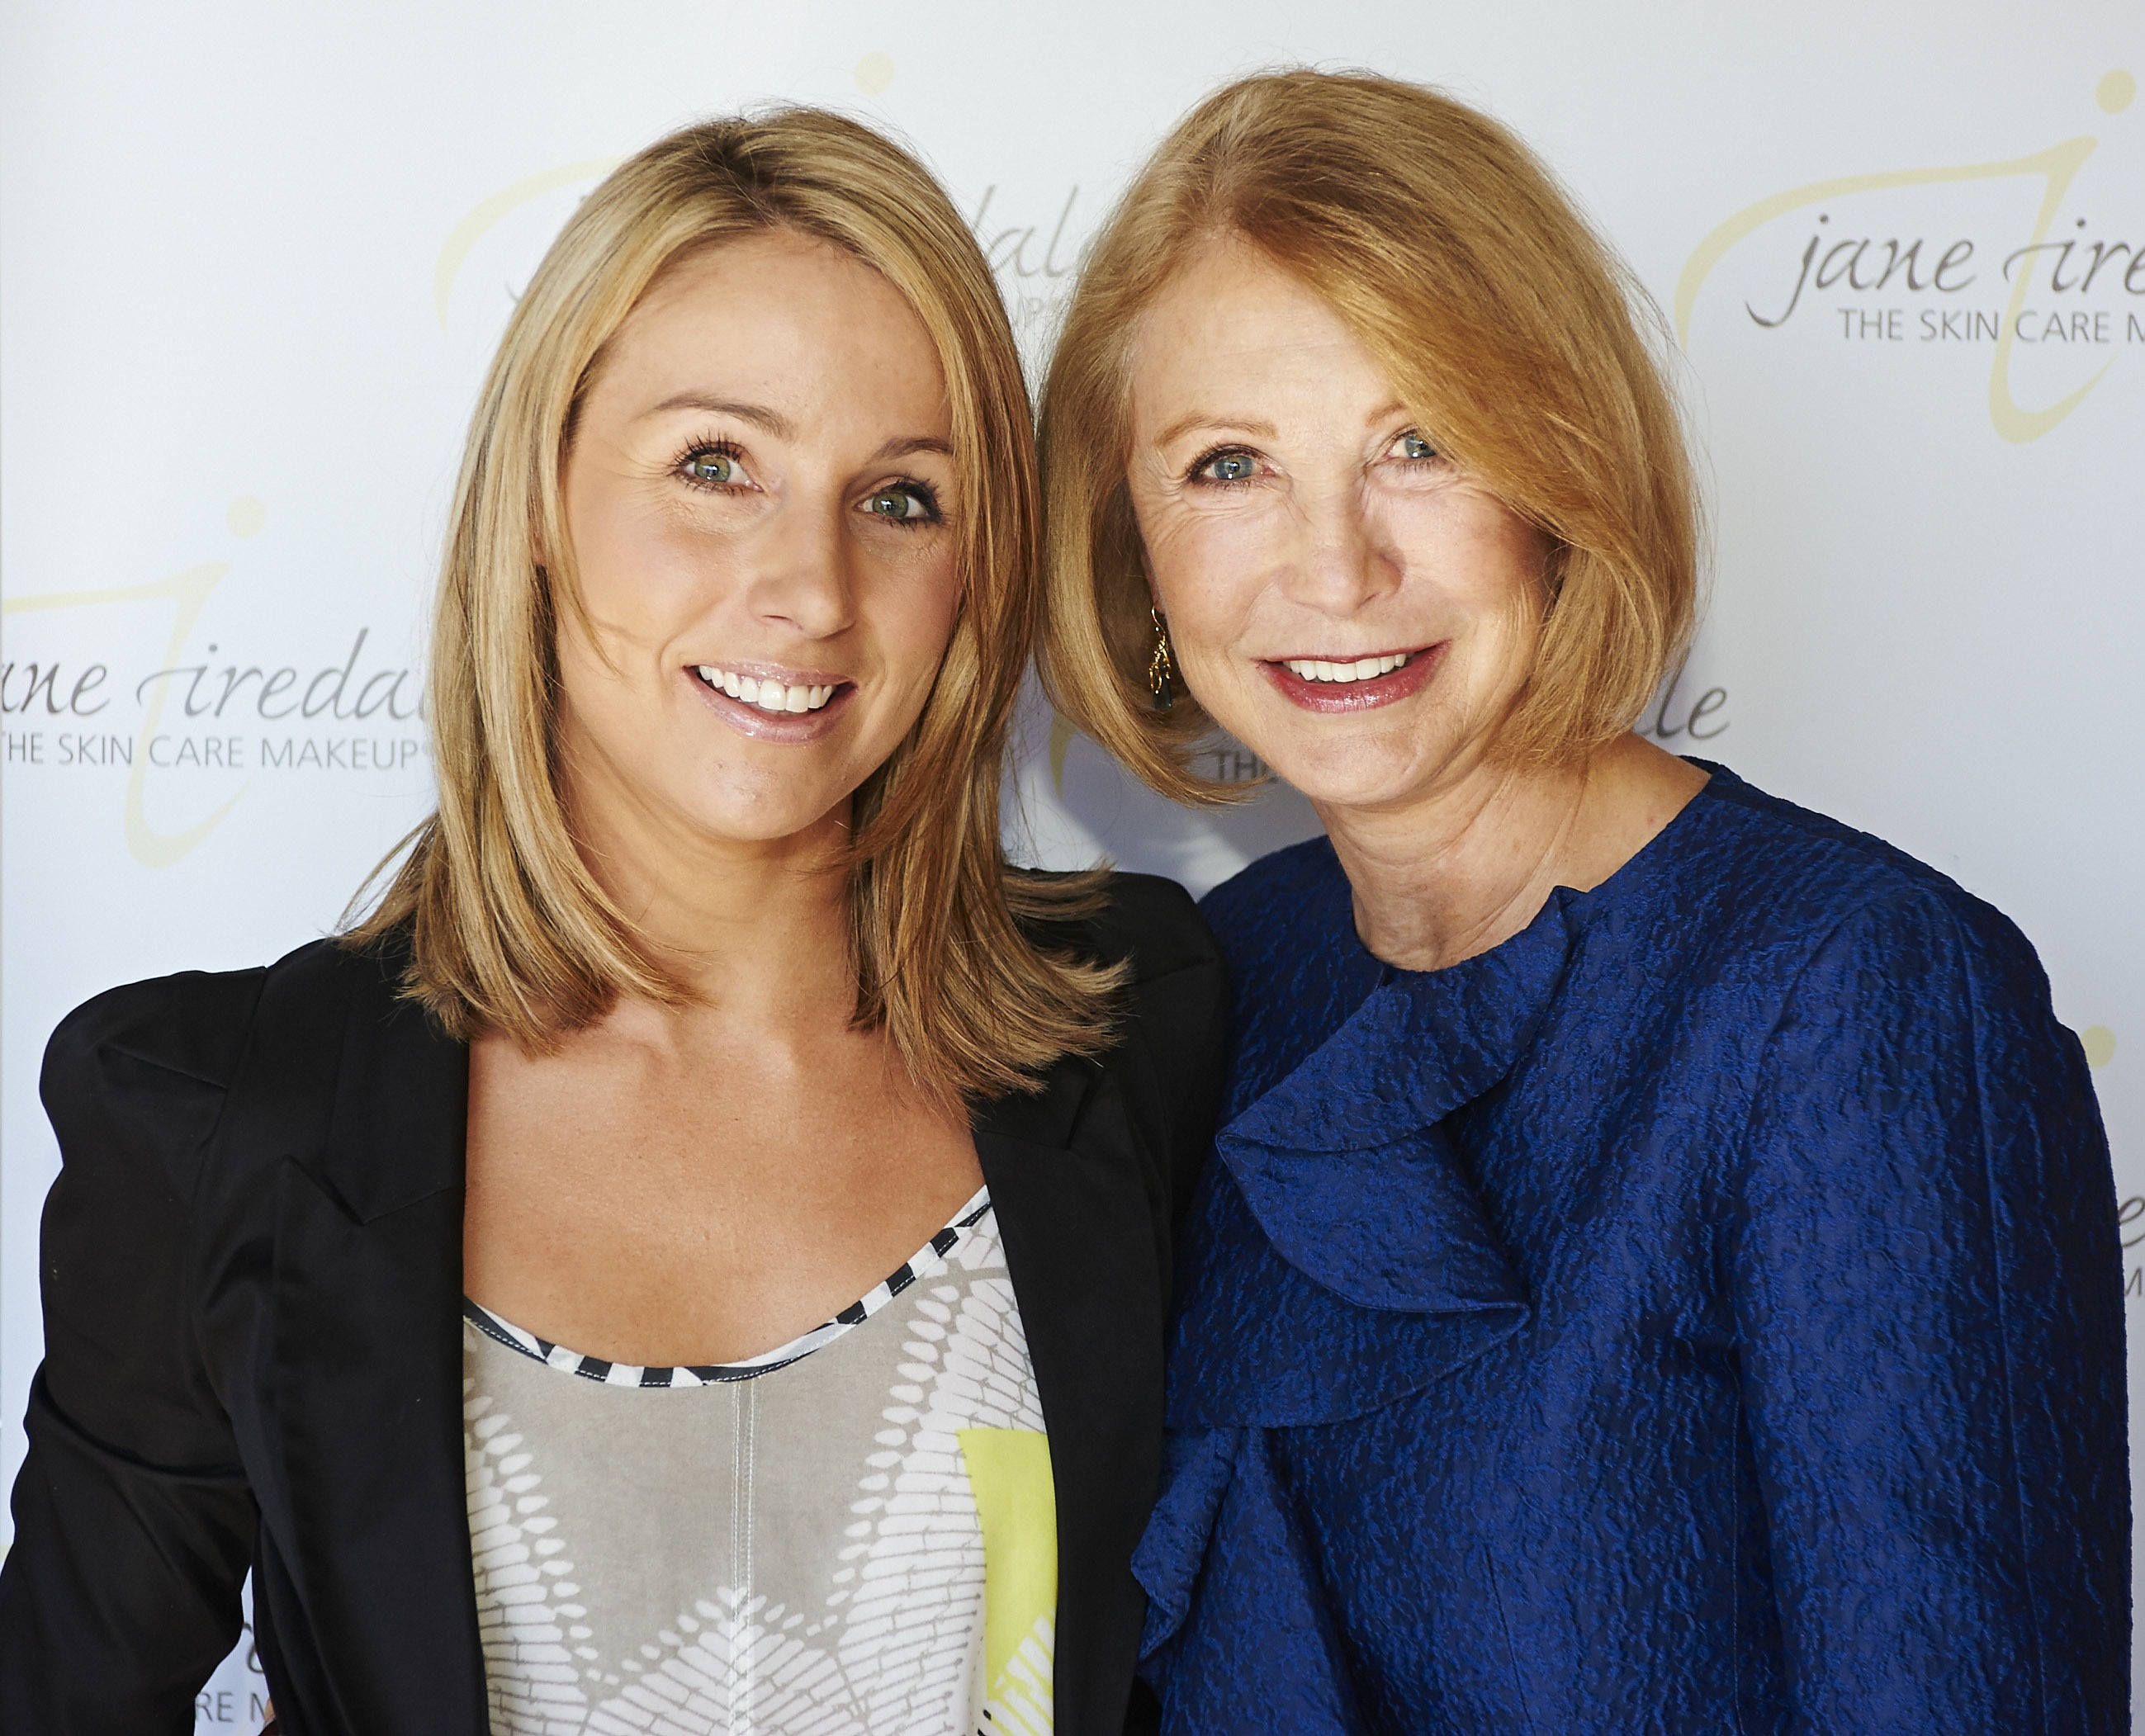 Ry.com.au Interview with Jane Iredale